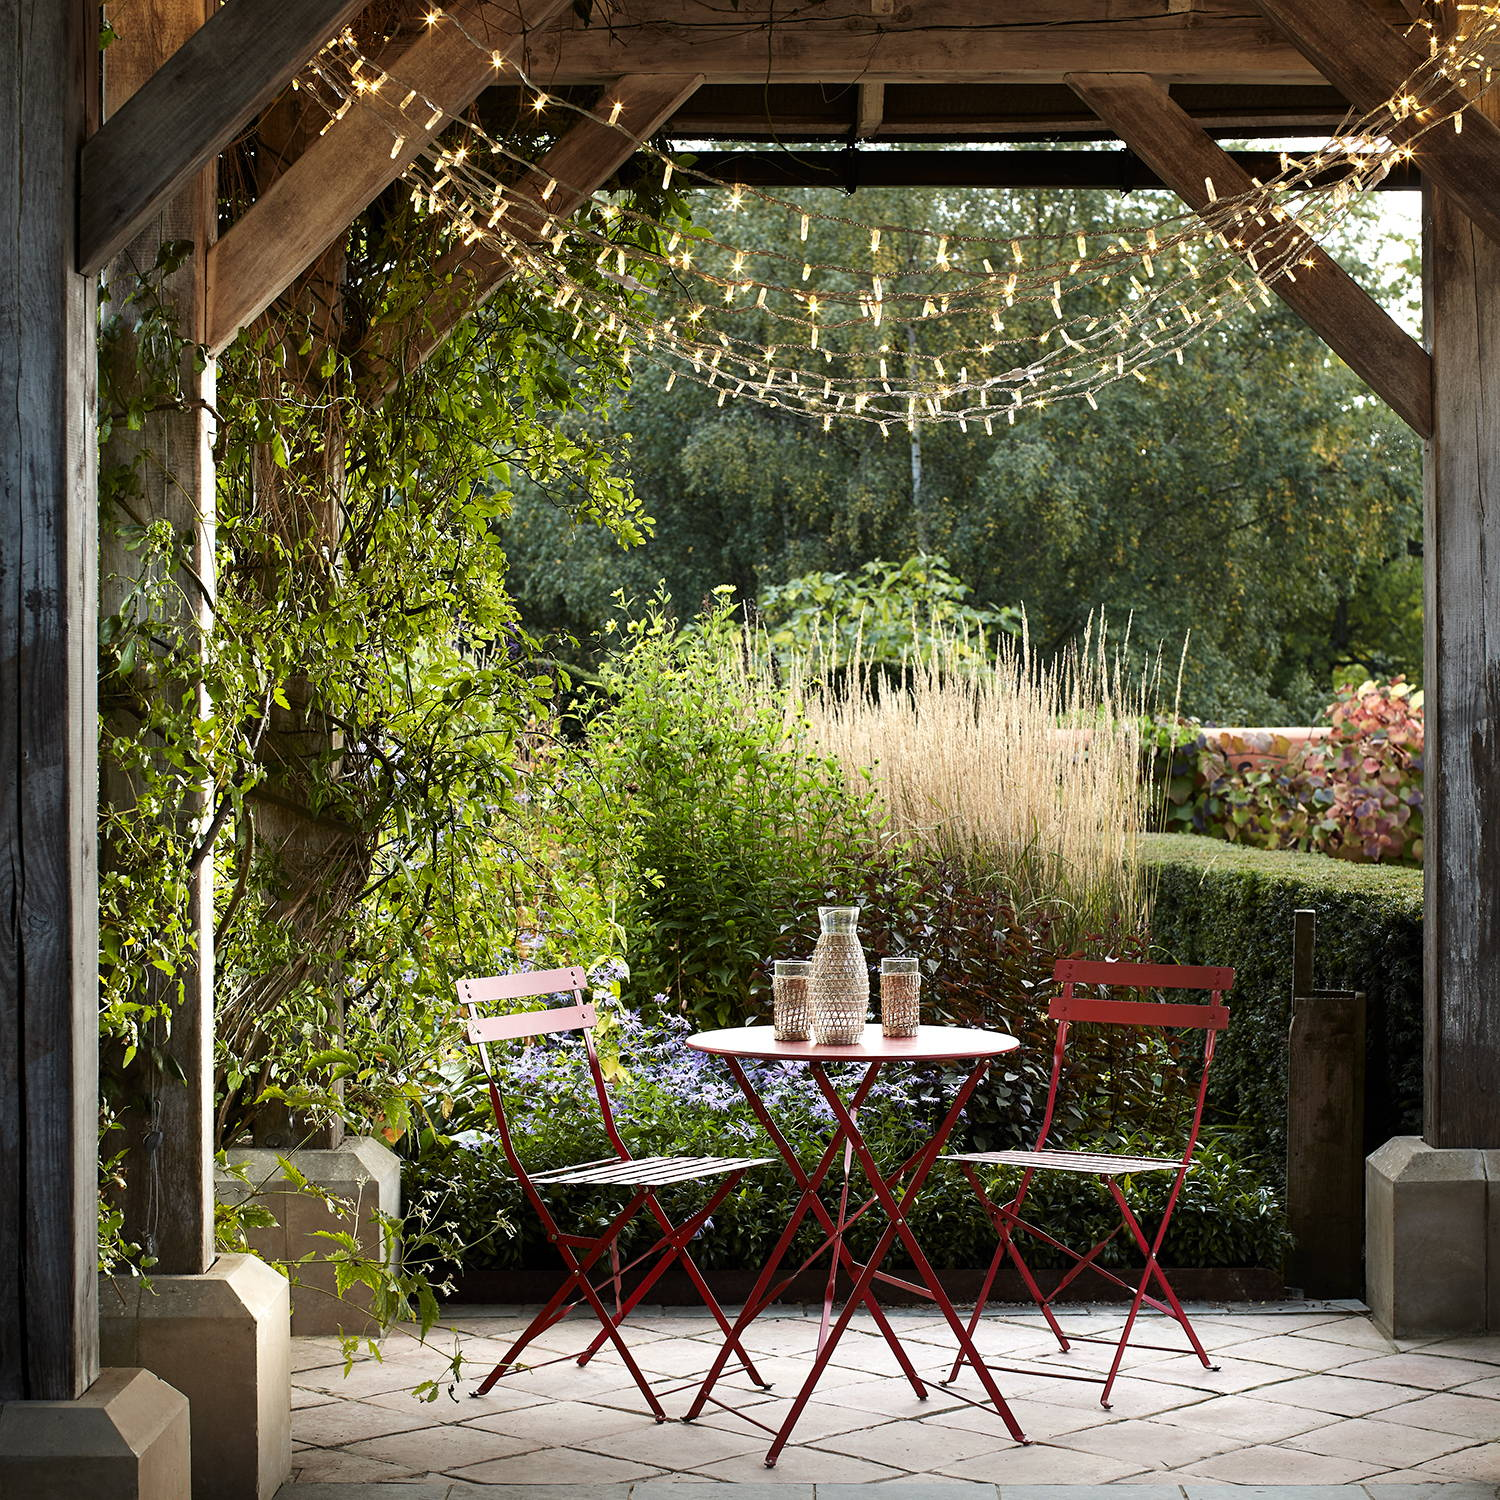 A red table and chair set under a wooden structure with a fairy light canopy above